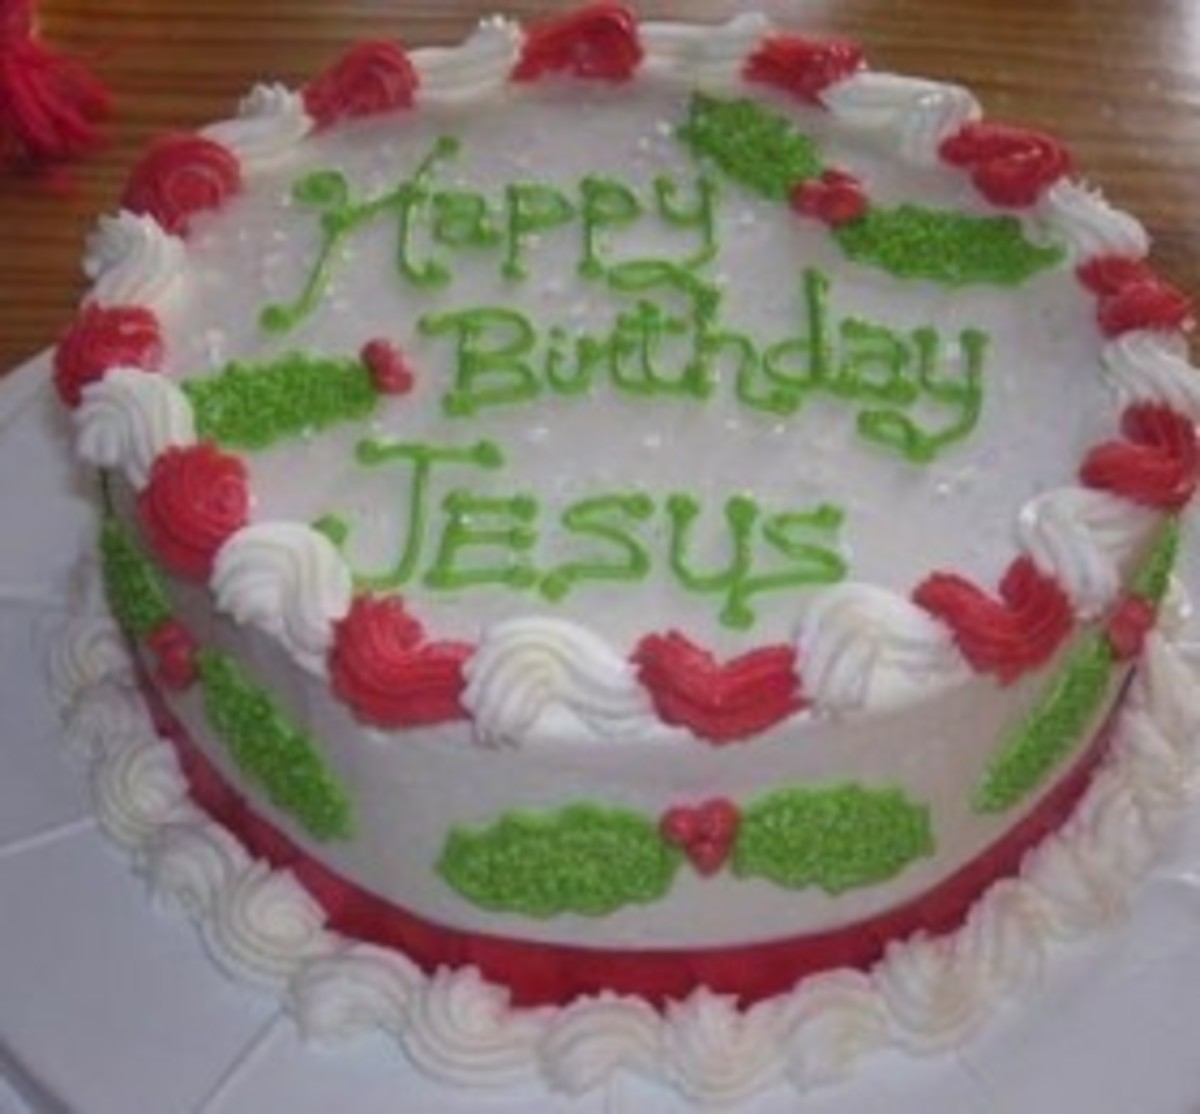 Excellent A Birthday Cake For Jesus Todays Mama Personalised Birthday Cards Veneteletsinfo